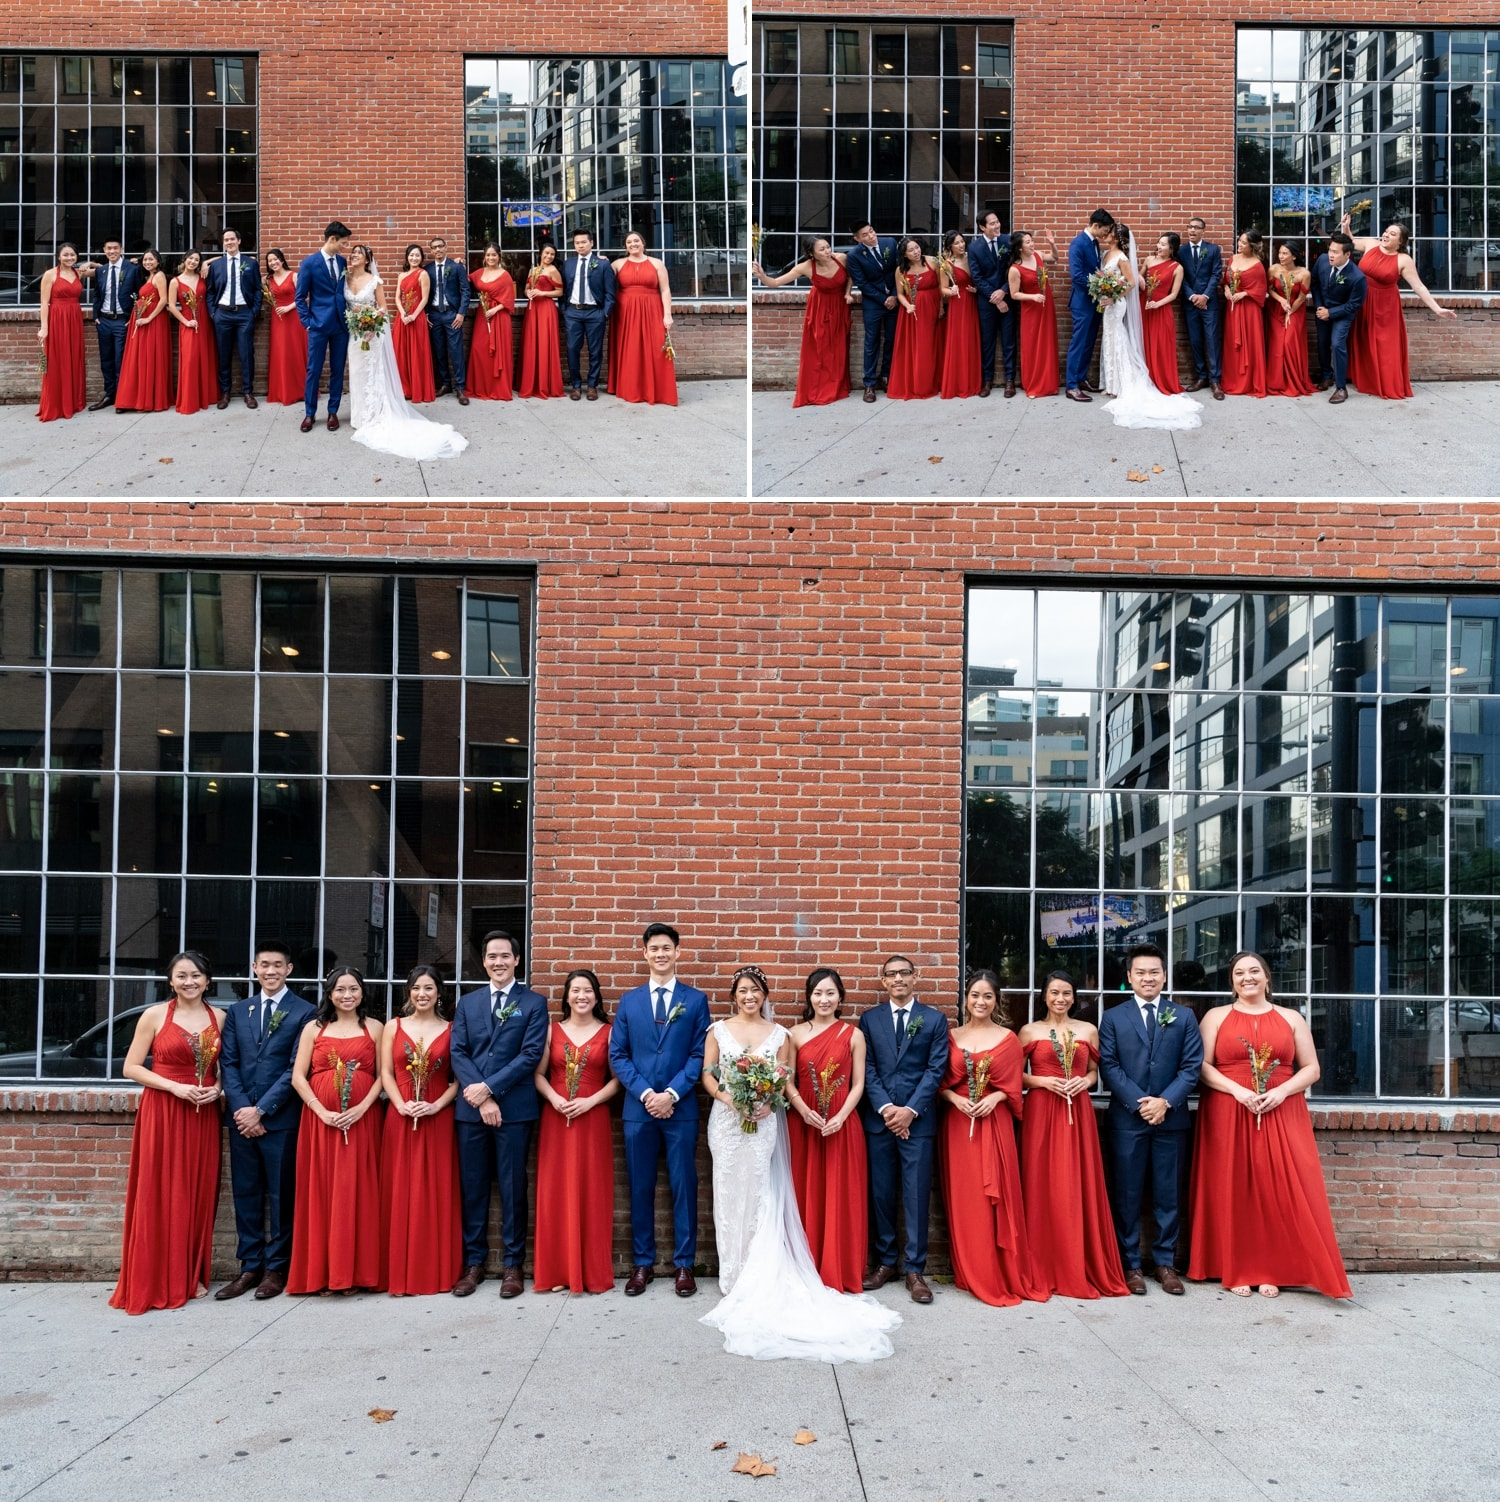 Bridal party in front of a brick wall in San Diego.